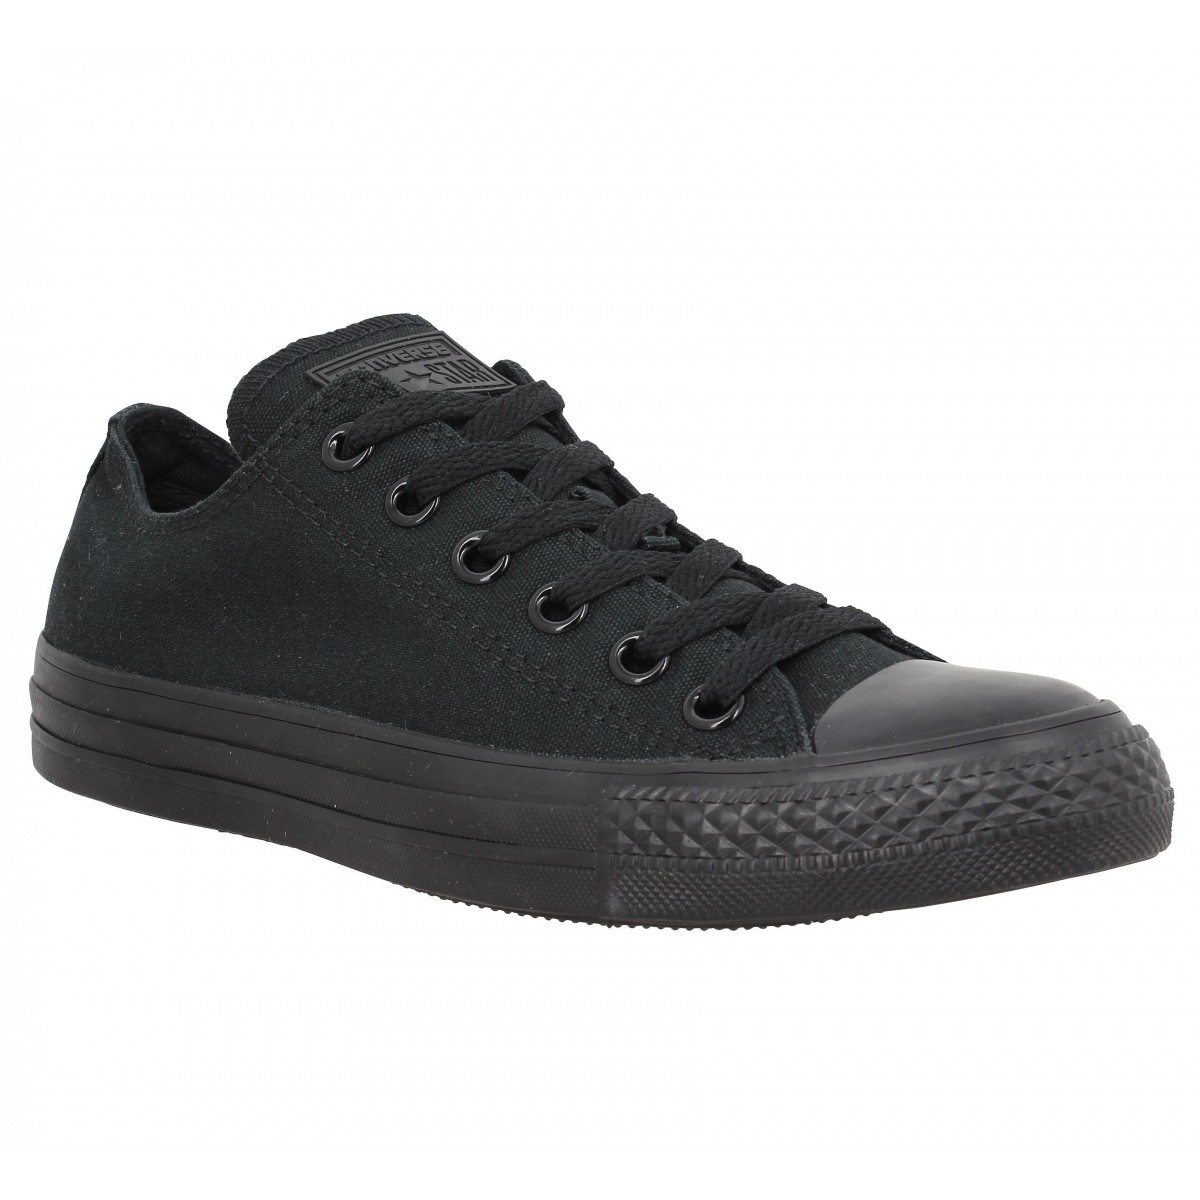 Baskets CONVERSE Chuck Taylor All Star toile Black